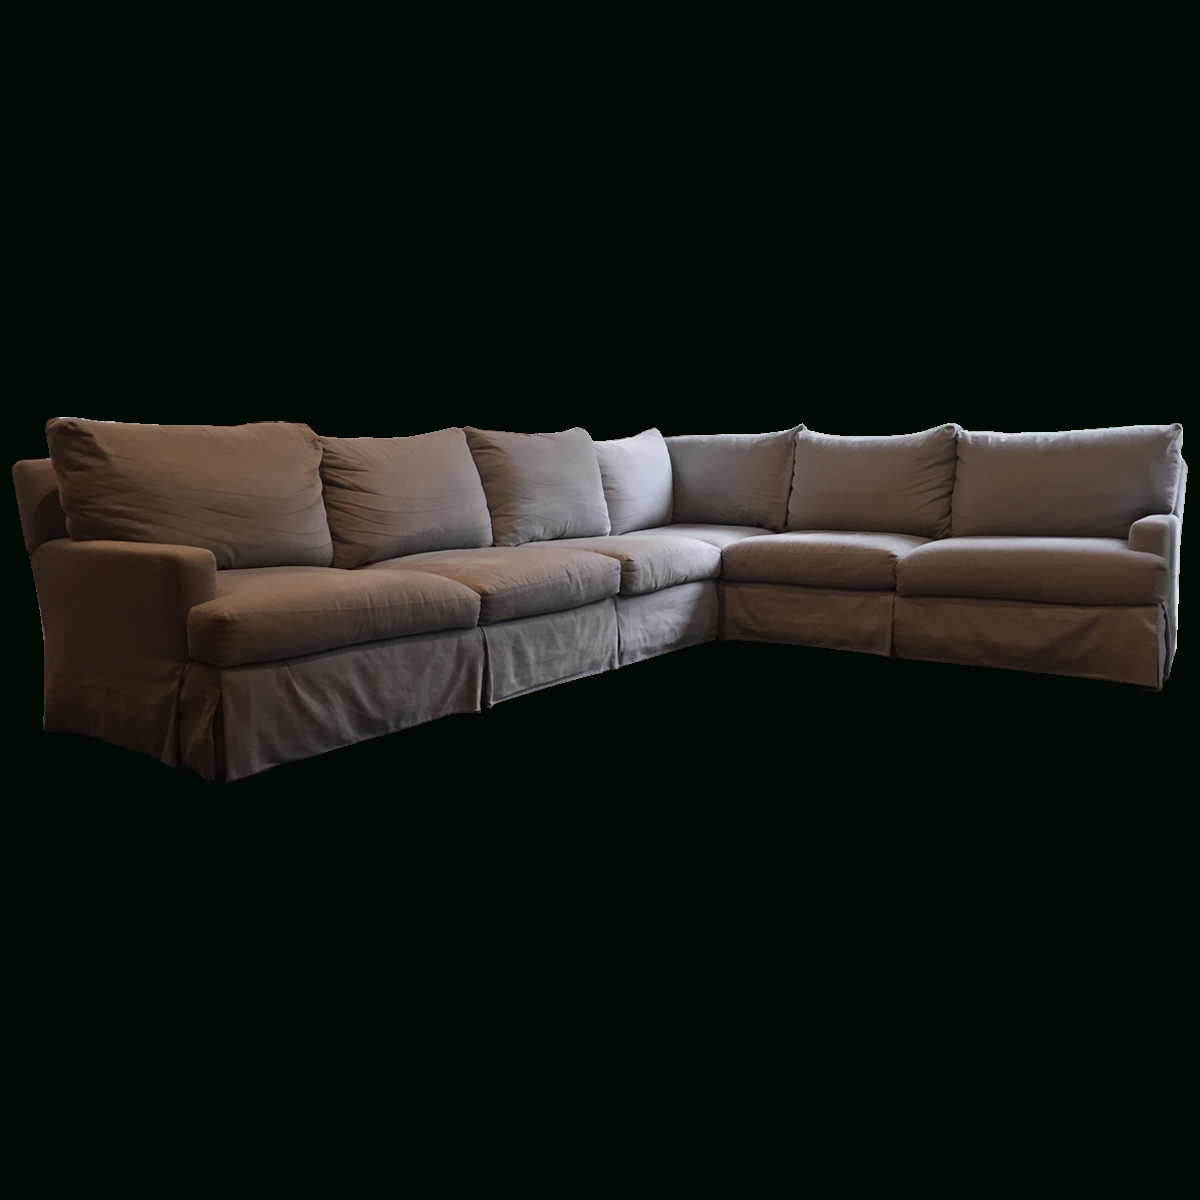 2018 Viyet – Designer Furniture – Seating – Lee Industries Linen Blend Intended For Lee Industries Sectional Sofas (View 10 of 20)